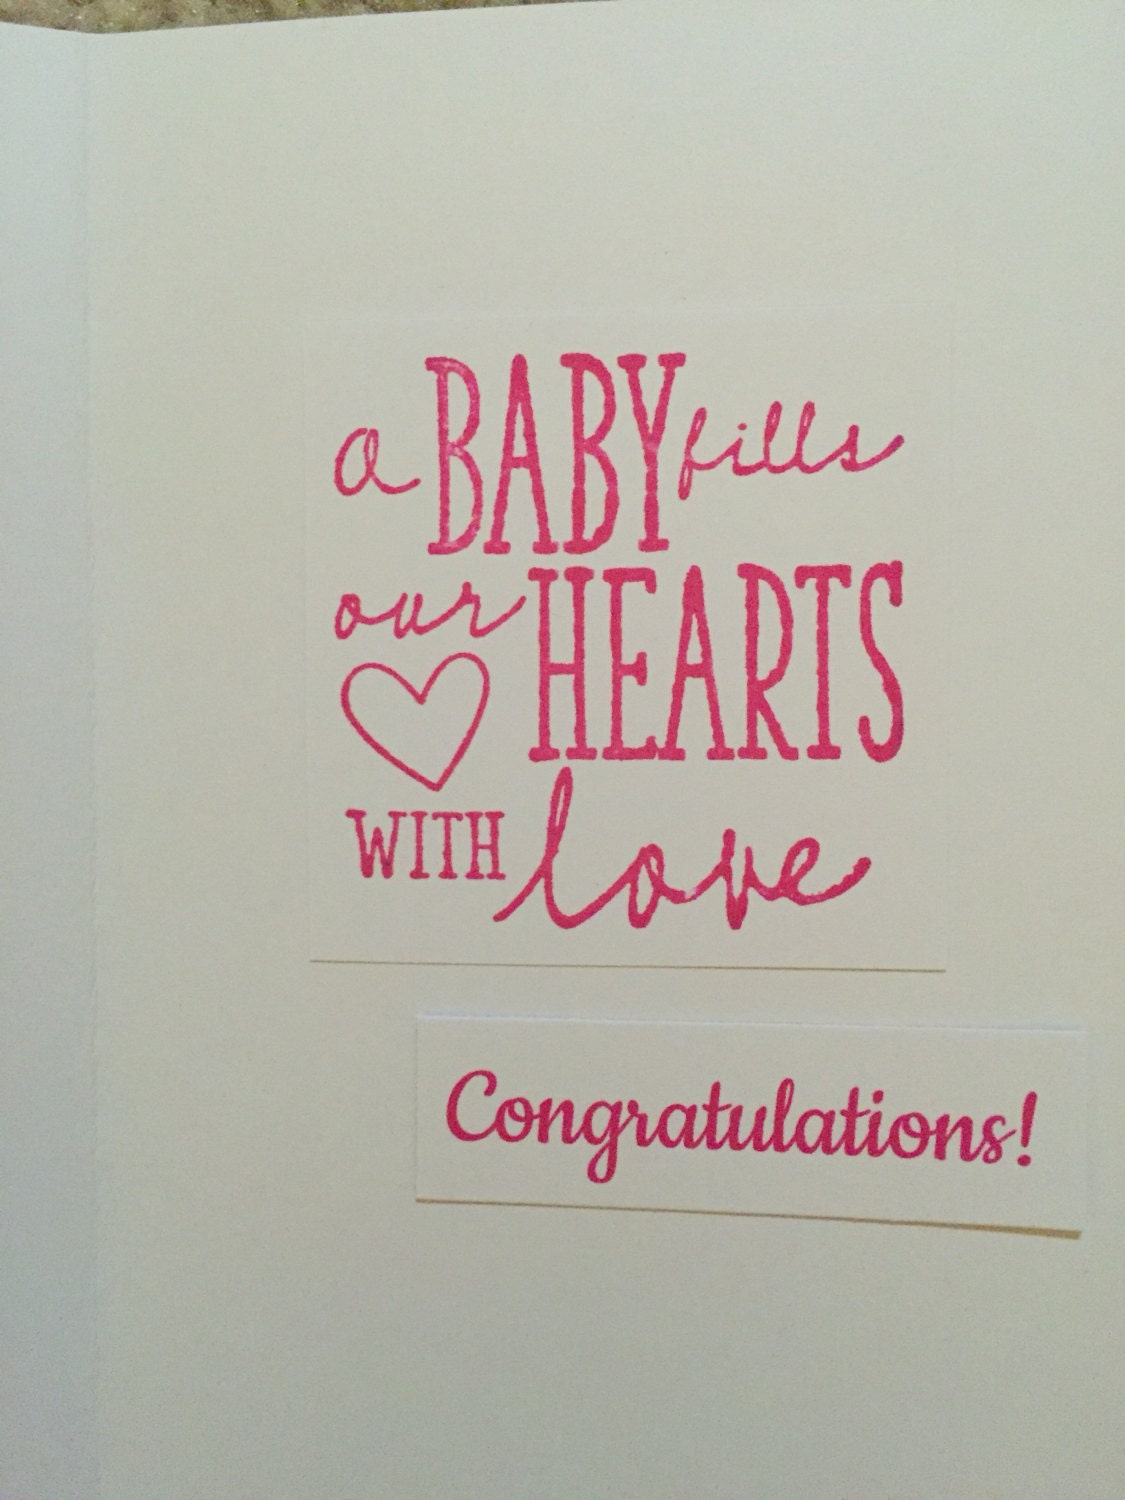 Welcome baby greeting cardcongratulationsnew babybaby boy welcome baby greeting cardcongratulationsnew babybaby boybaby girl kristyandbryce Images